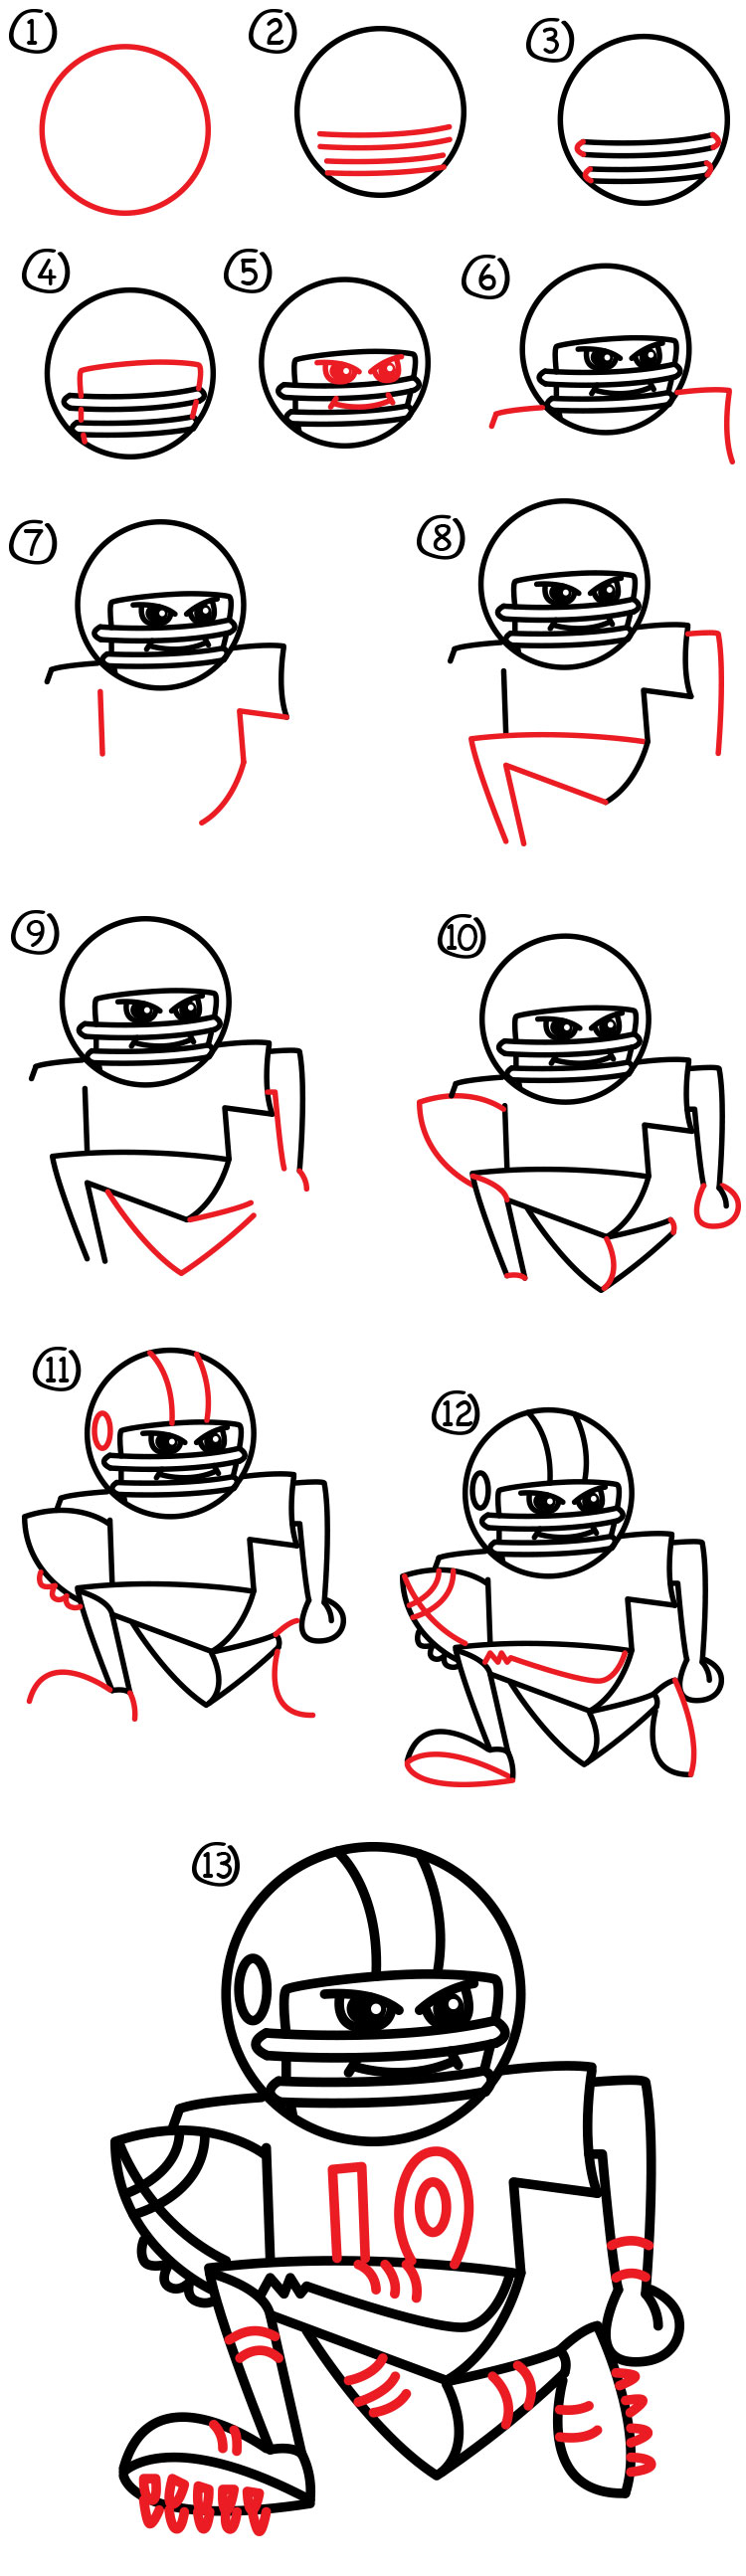 750x2590 How To Draw A Football Player